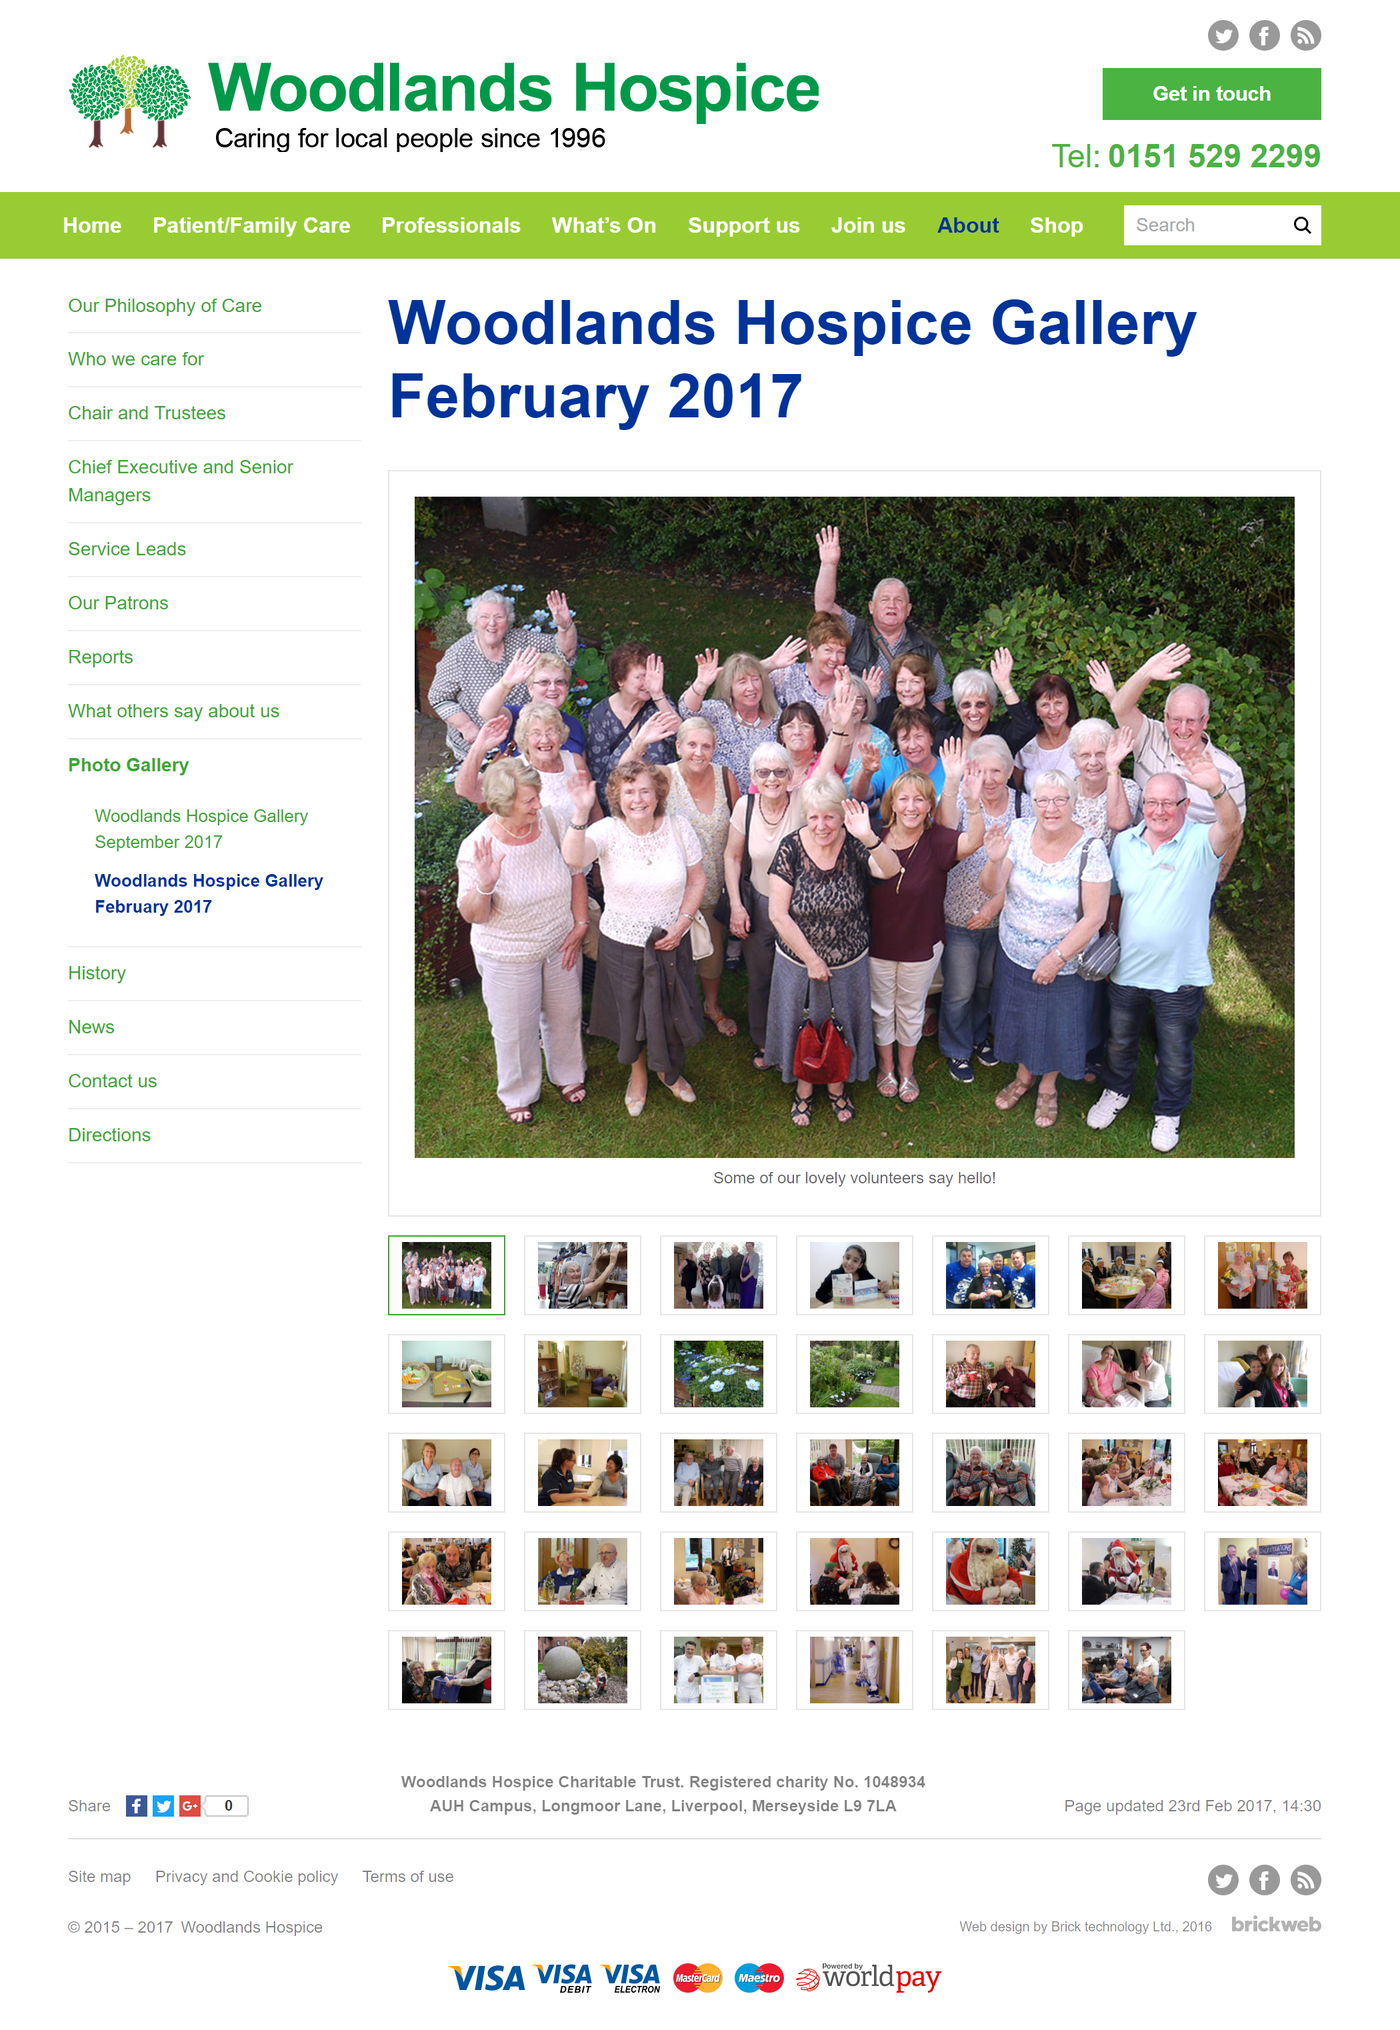 Woodlands Hospice Gallery February 2017